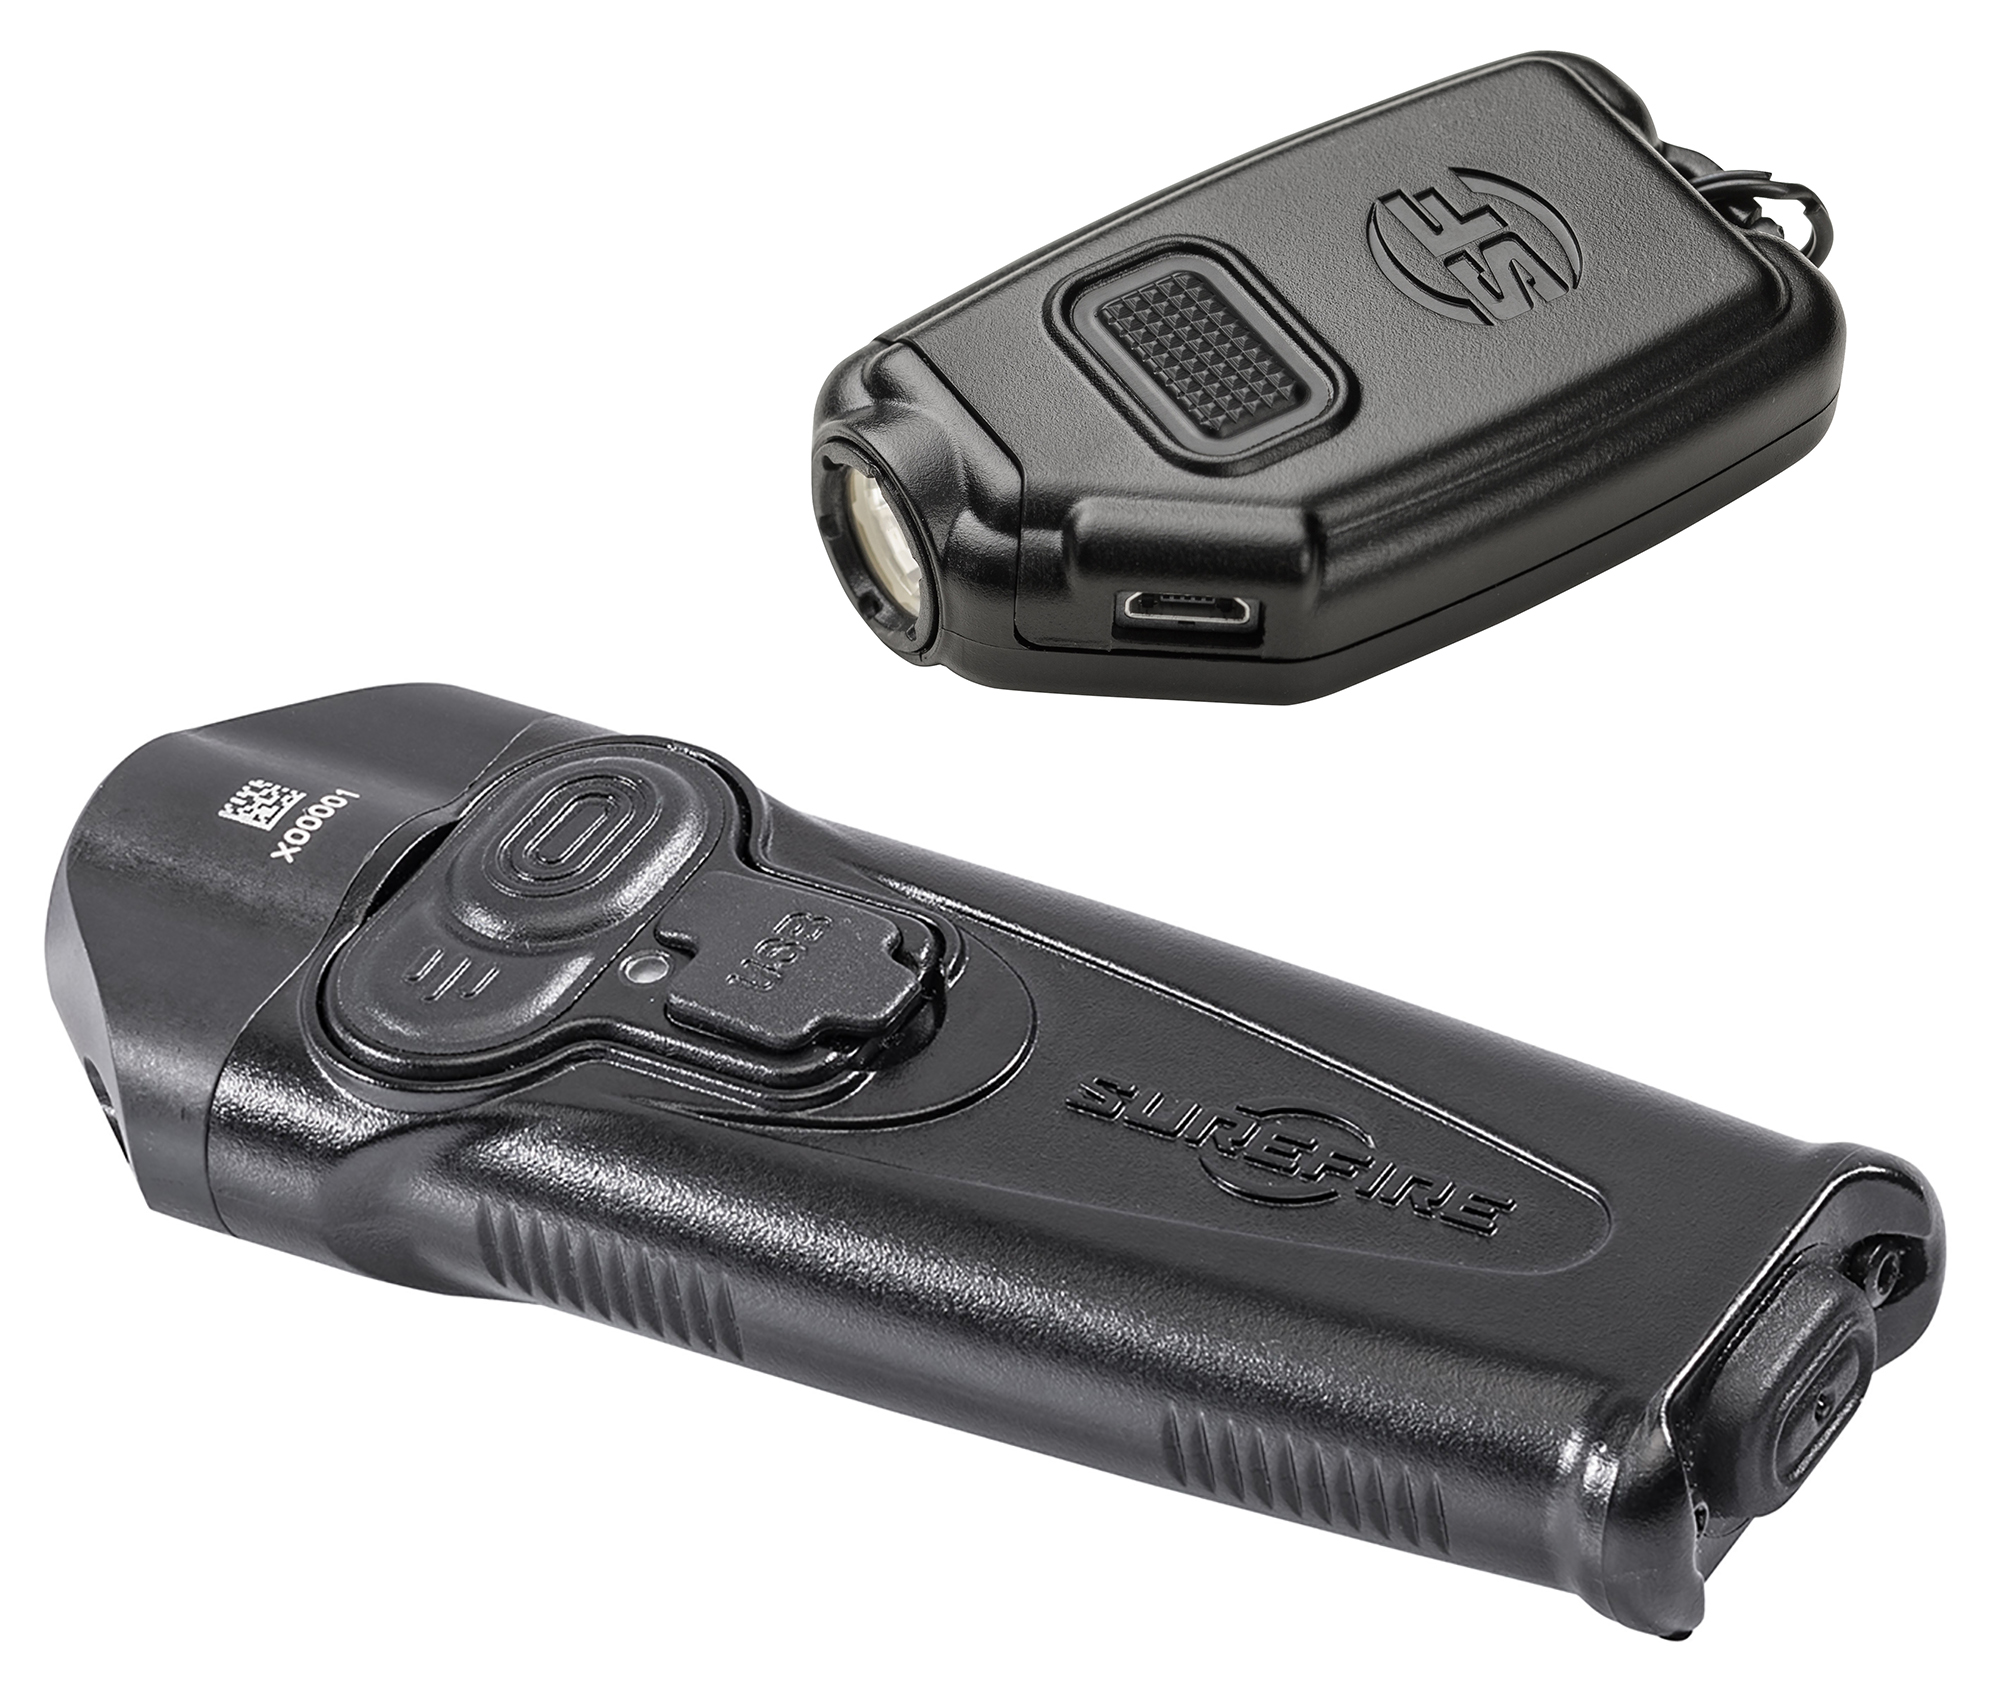 SureFire Stiletto and SureFire Sidekick